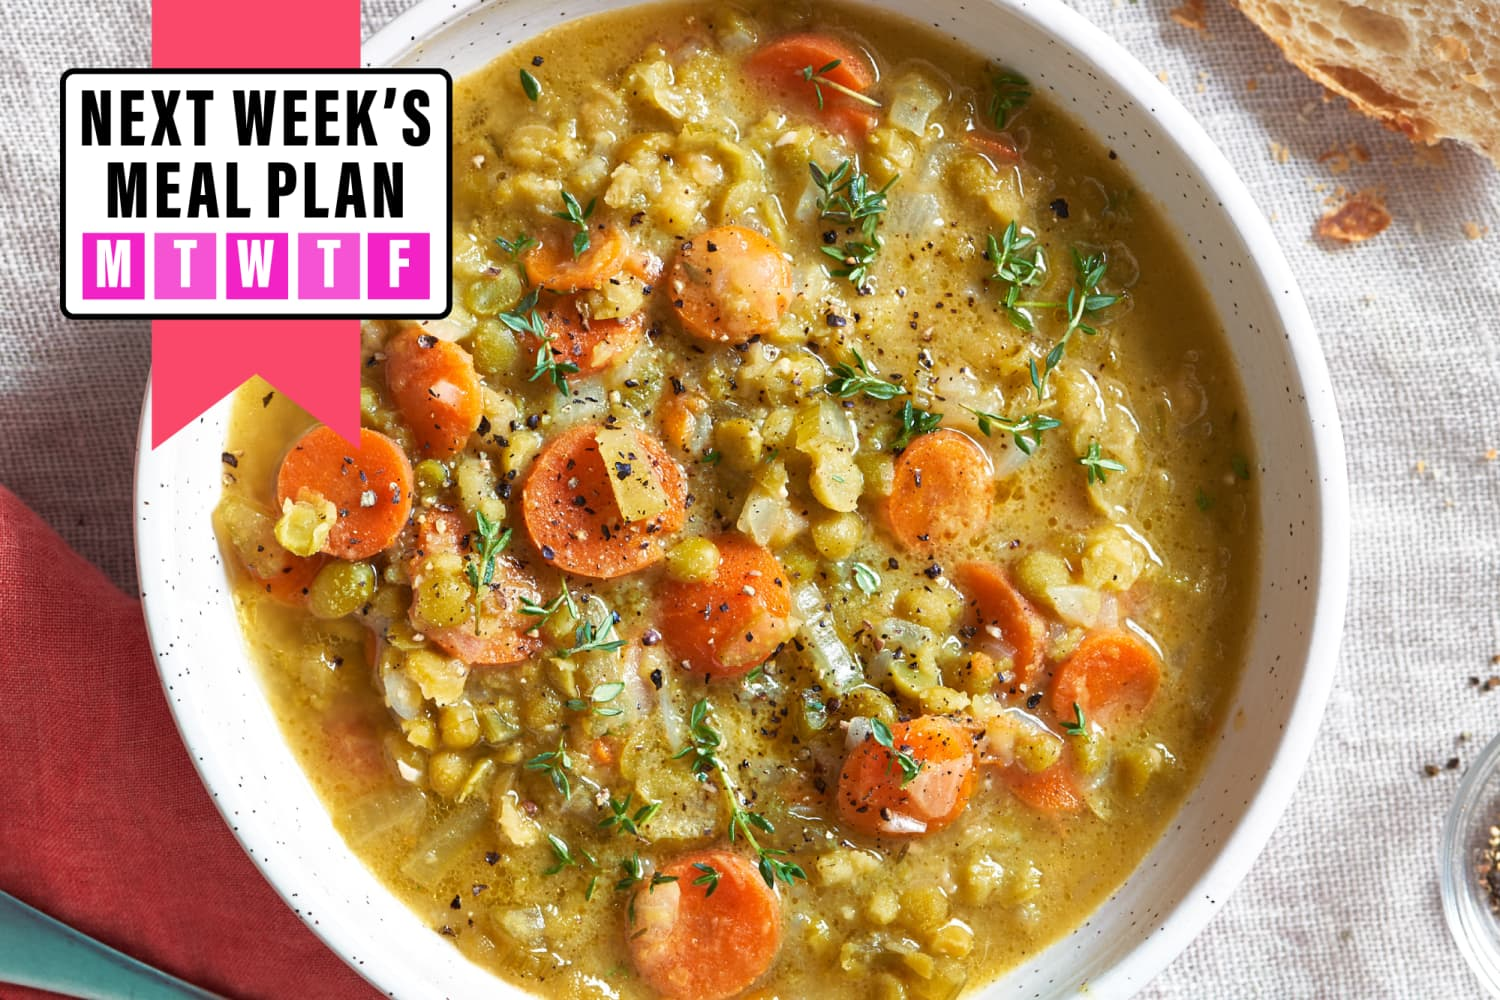 Next Week's Meal Plan: 5 Feel-Good Dinners for the Week Ahead